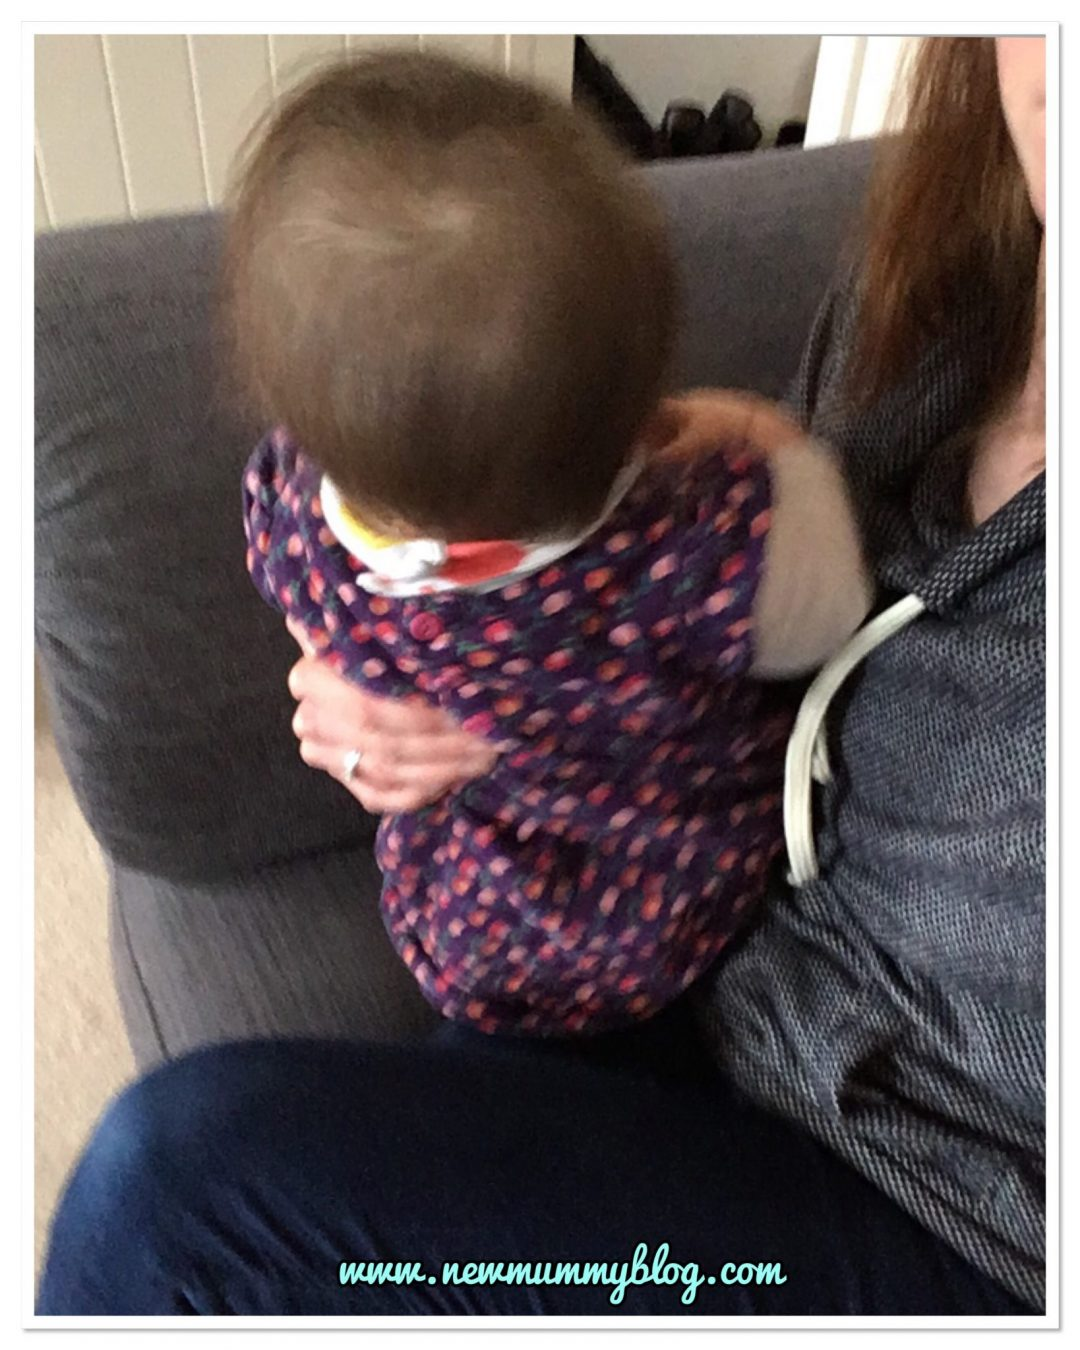 Baby distracted by a noise during breastfeeding. Sittingbolt upright. The challenge of feeding a 9 month old who sits, crawls and wants to be involved!